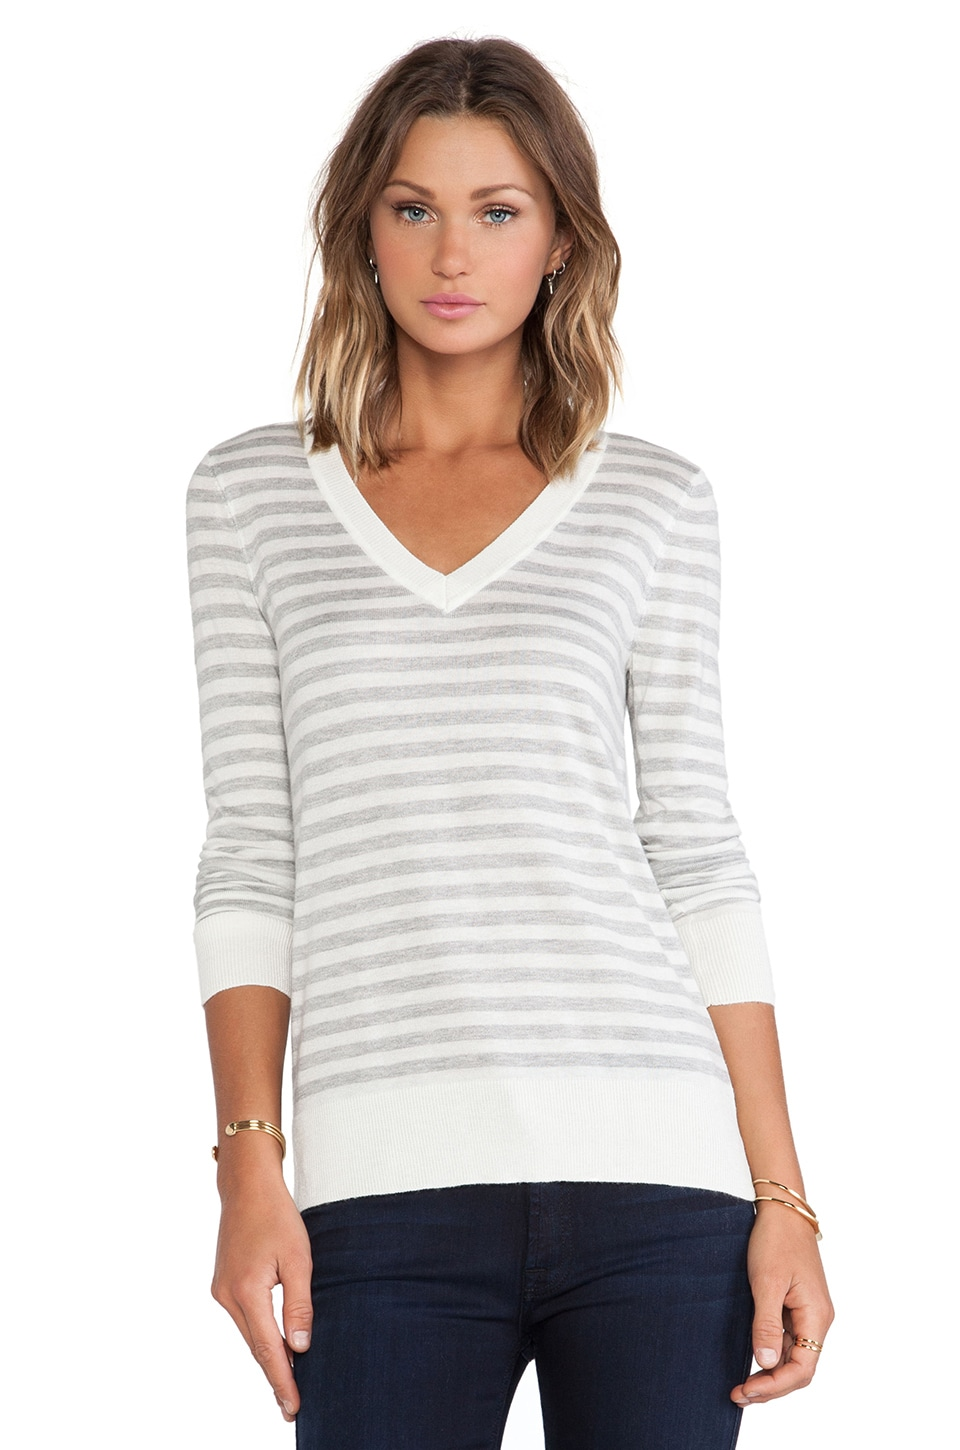 Splendid Cashmere Blend V Neck Striped Sweater in Heather Grey